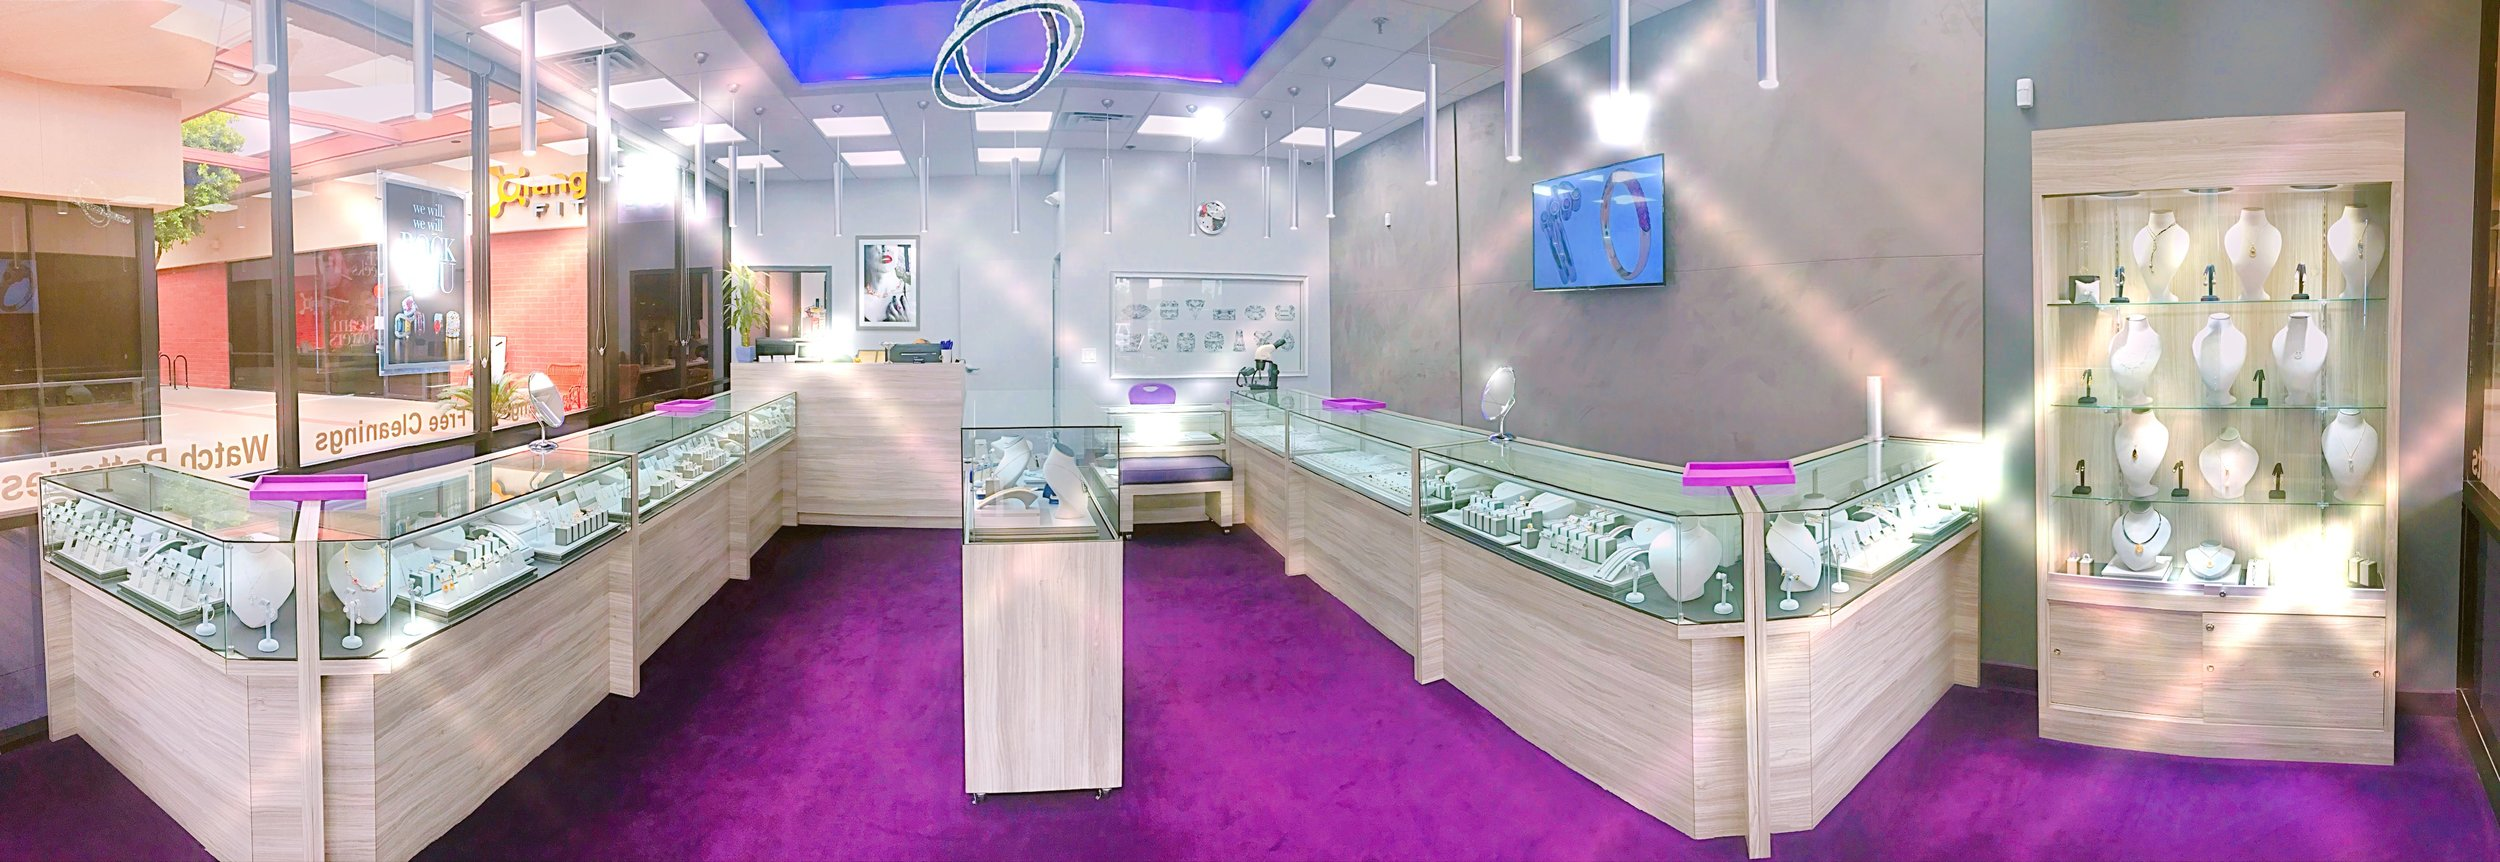 About Us. - Scottsdale Fine Jewelers